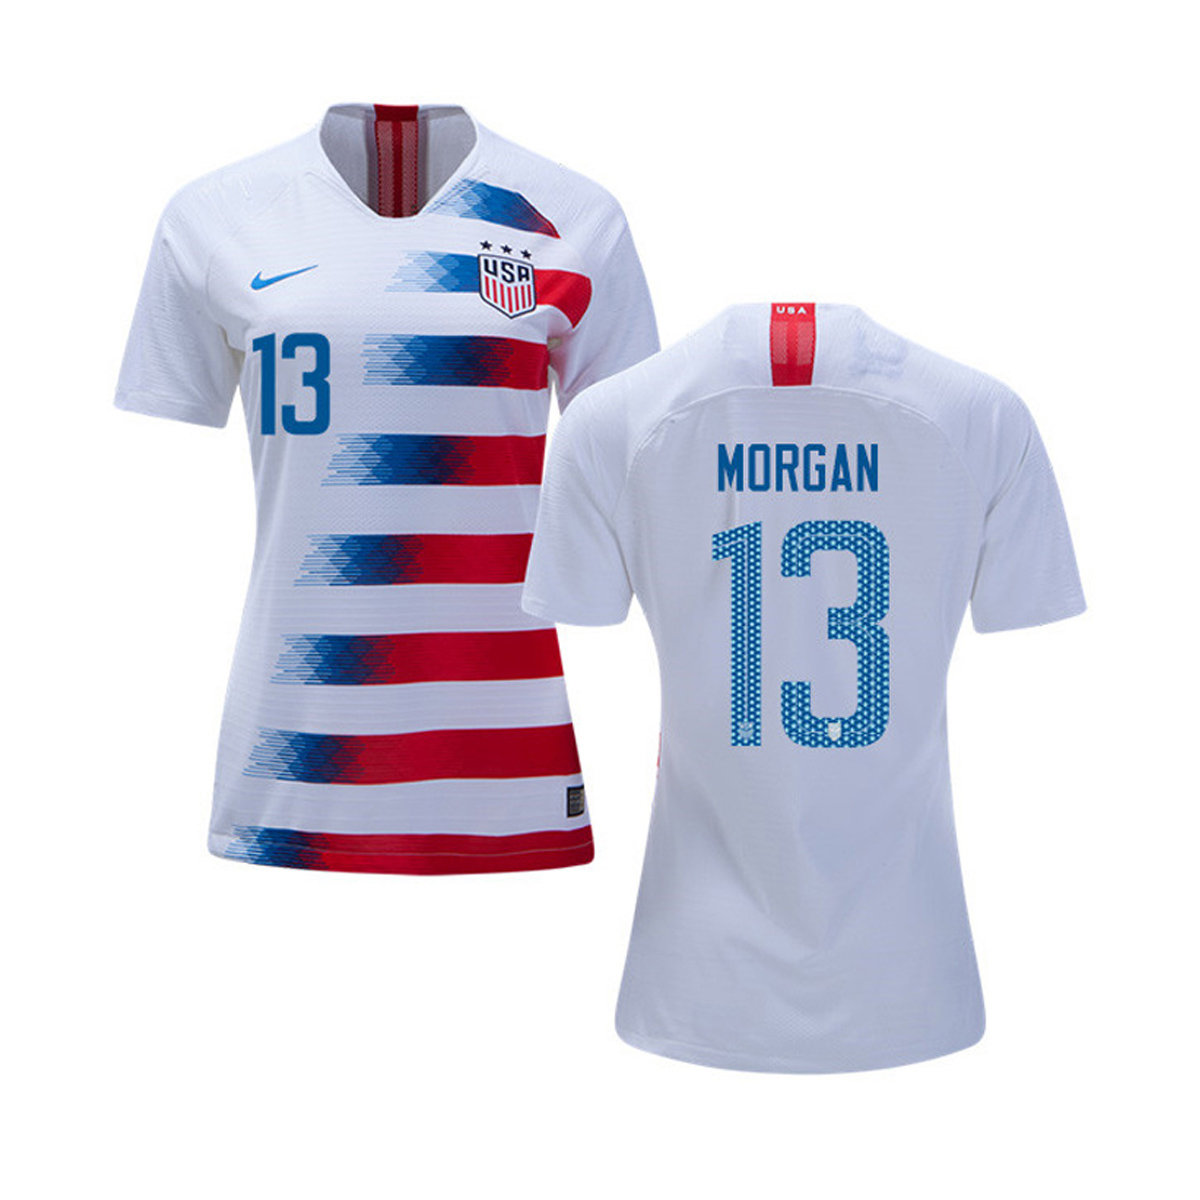 Nike Womens USA USWNT Home Soccer Jersey (2018/19)